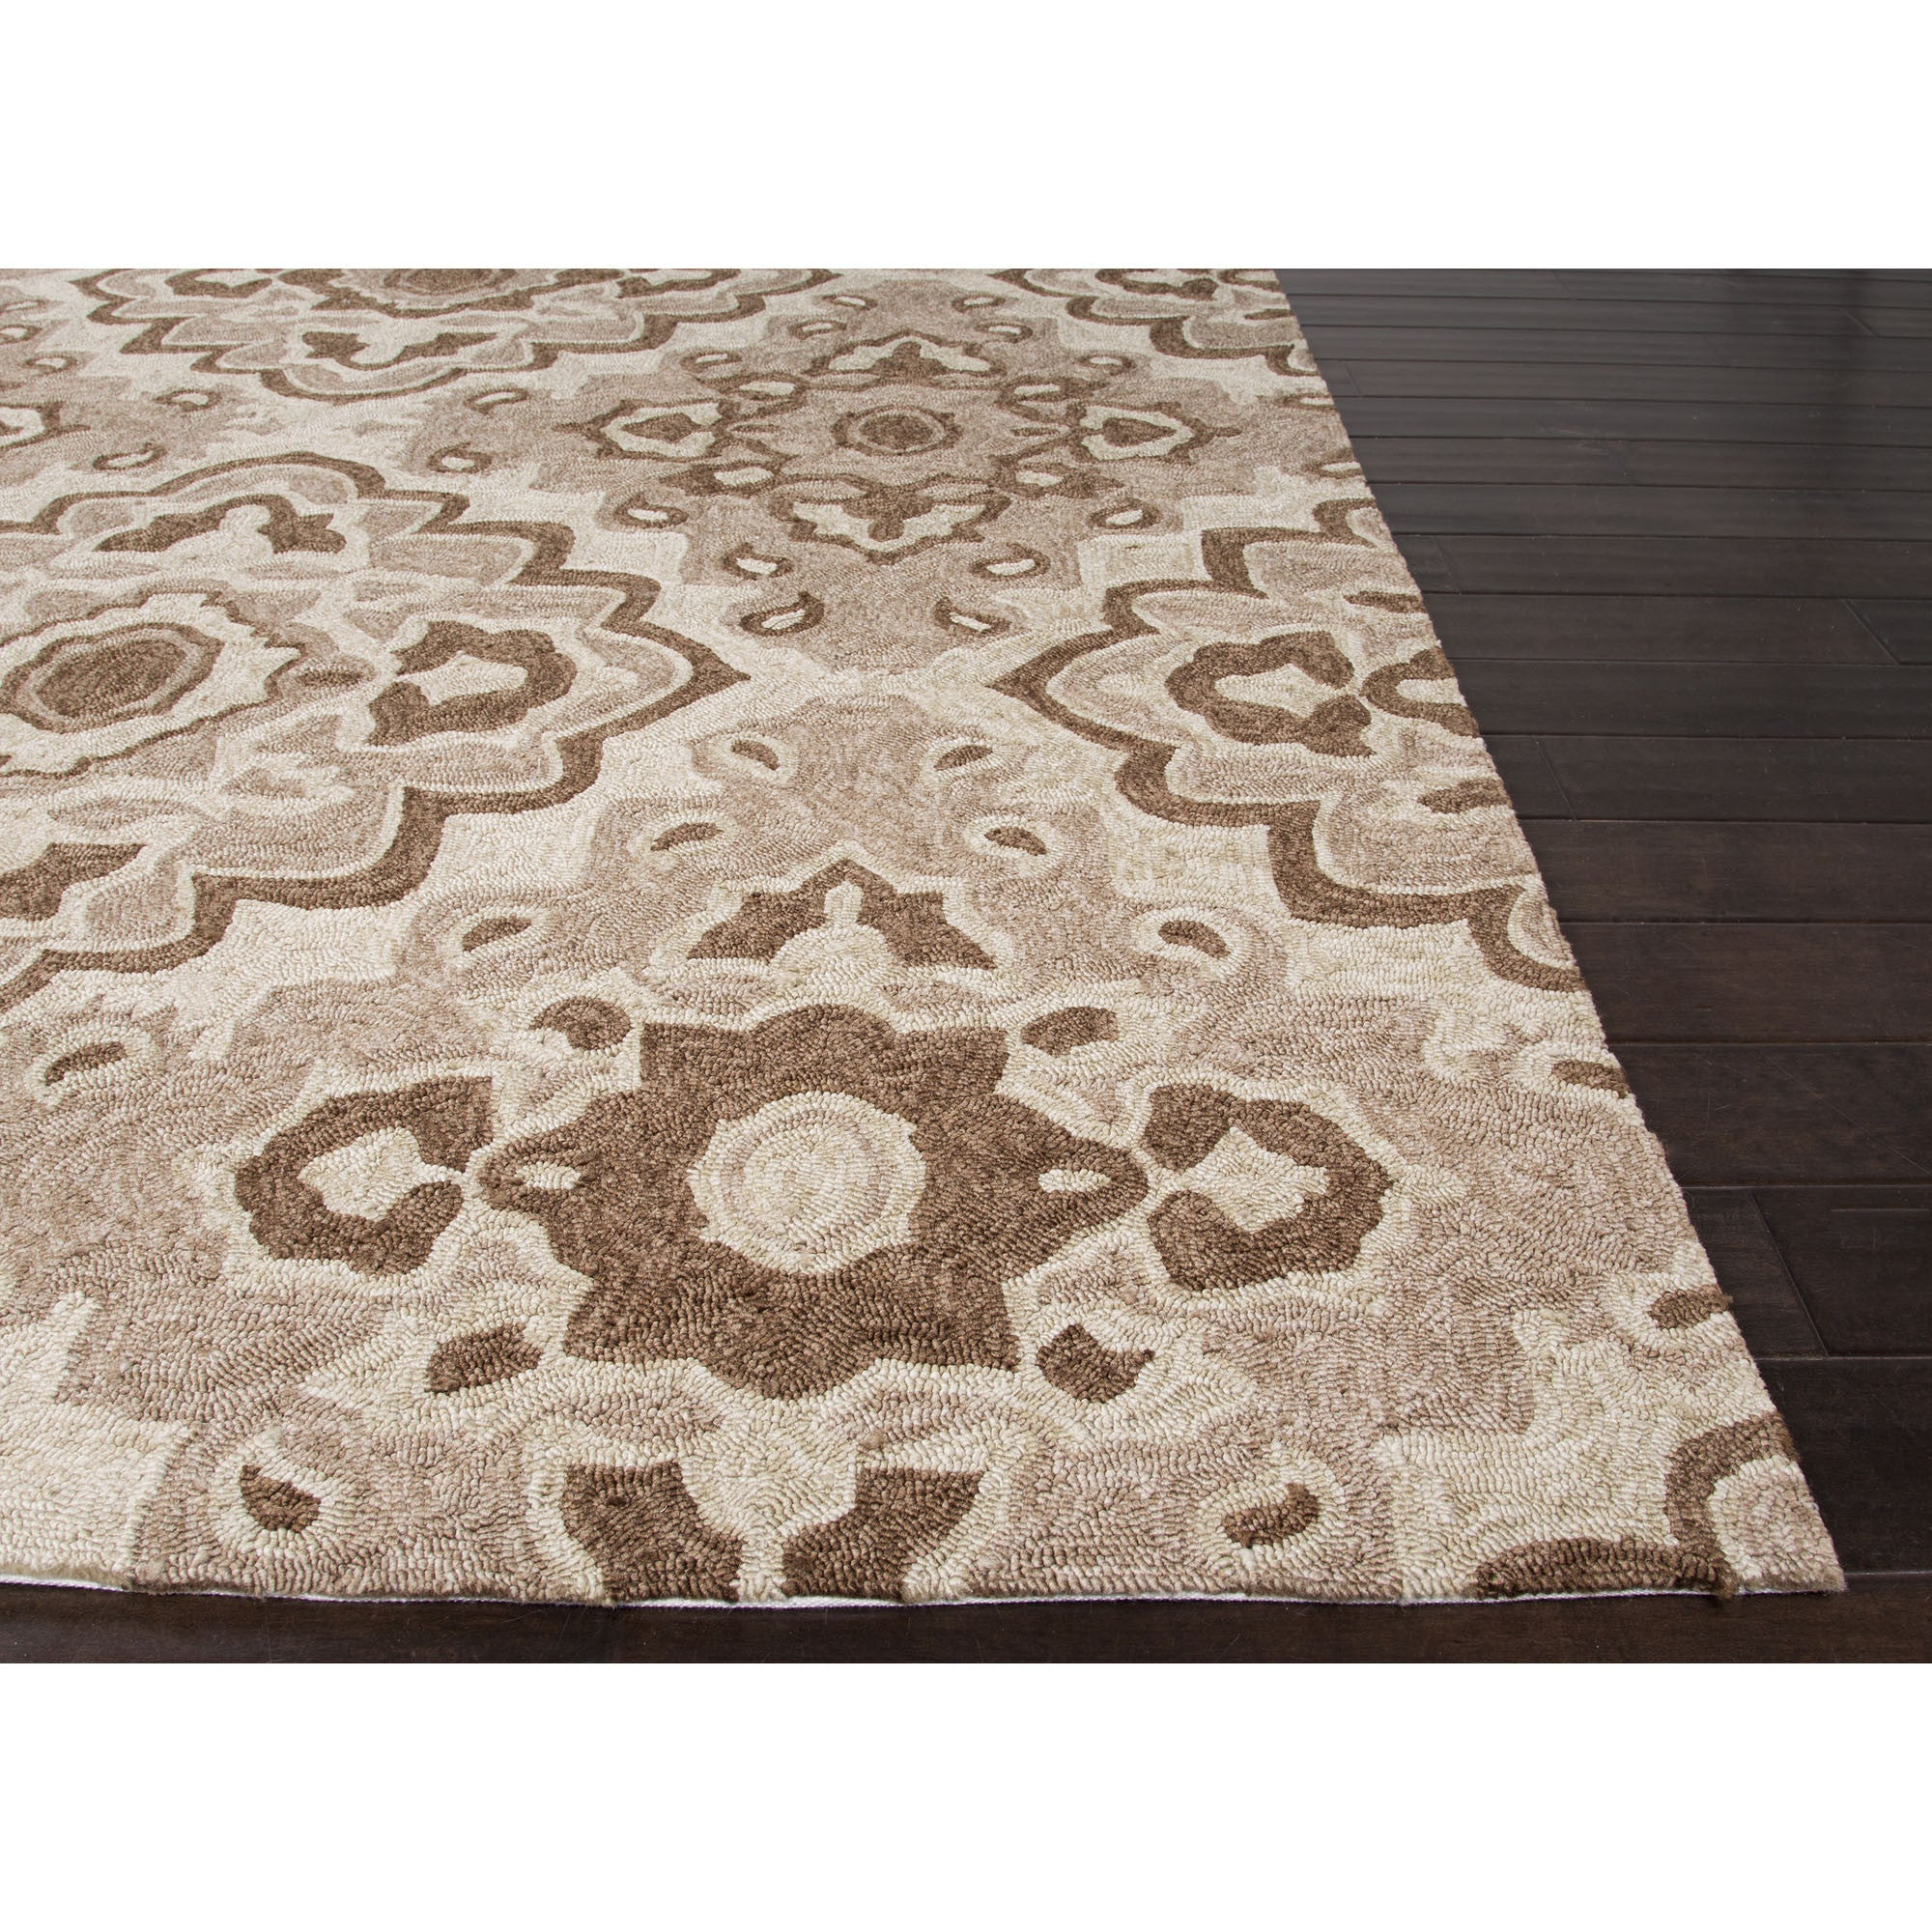 Jaipur Rugs IndoorOutdoor Moroccan Pattern Tan/Brown